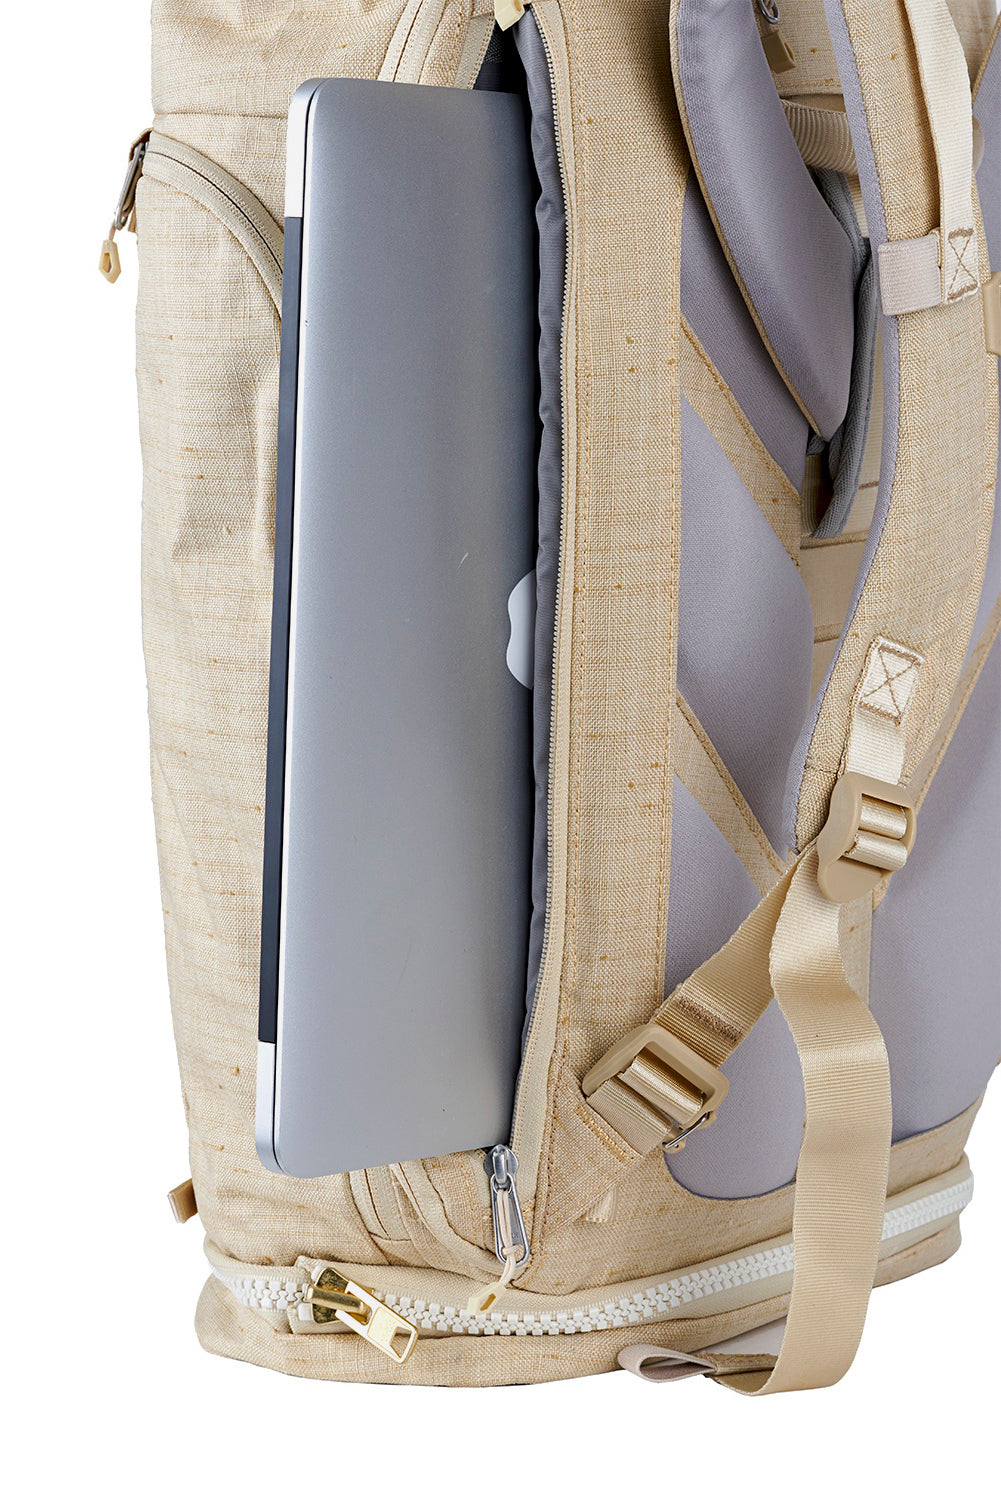 WAYKS Day Pack Sand Laptop Side Access